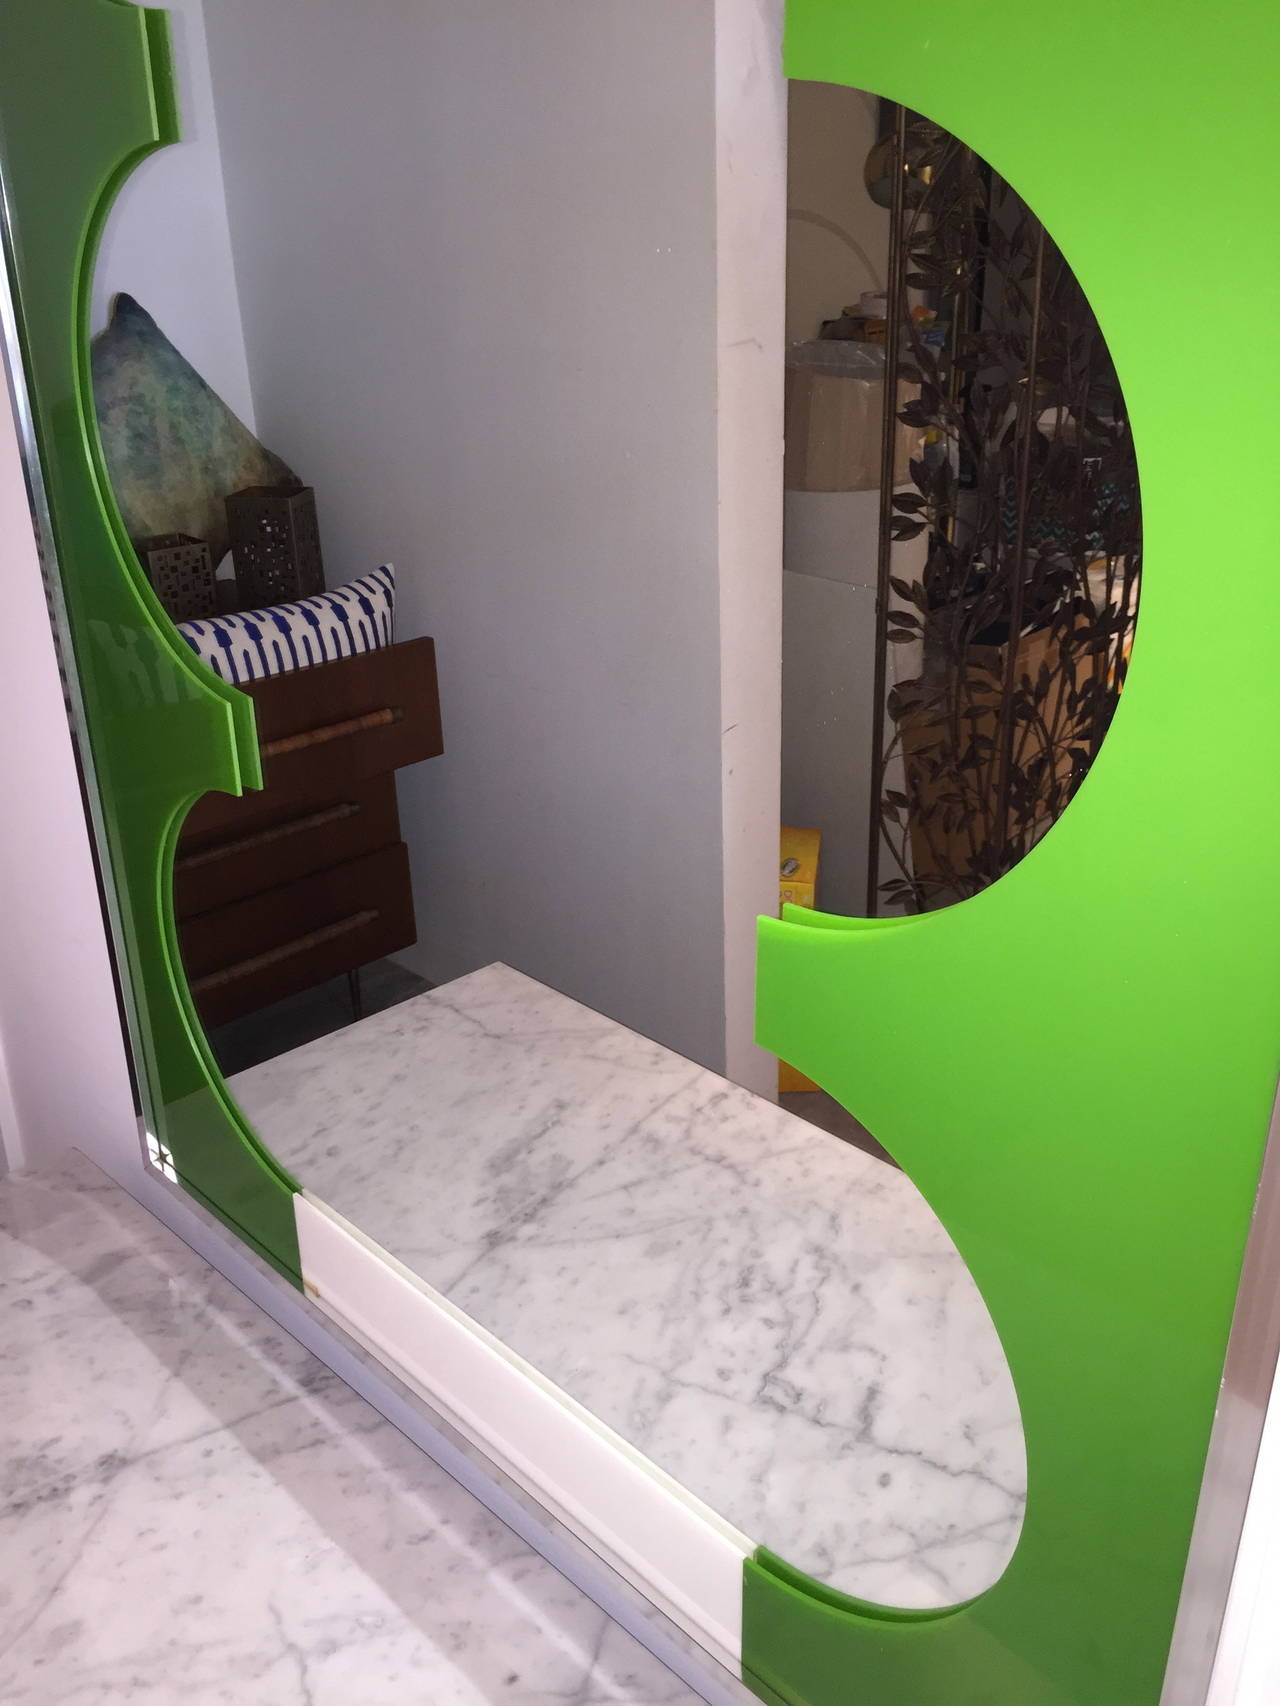 So very groovy baby! Vintage chartreuse plastic mod op art mirror would be a fun addition to a powder room or any bedroom.